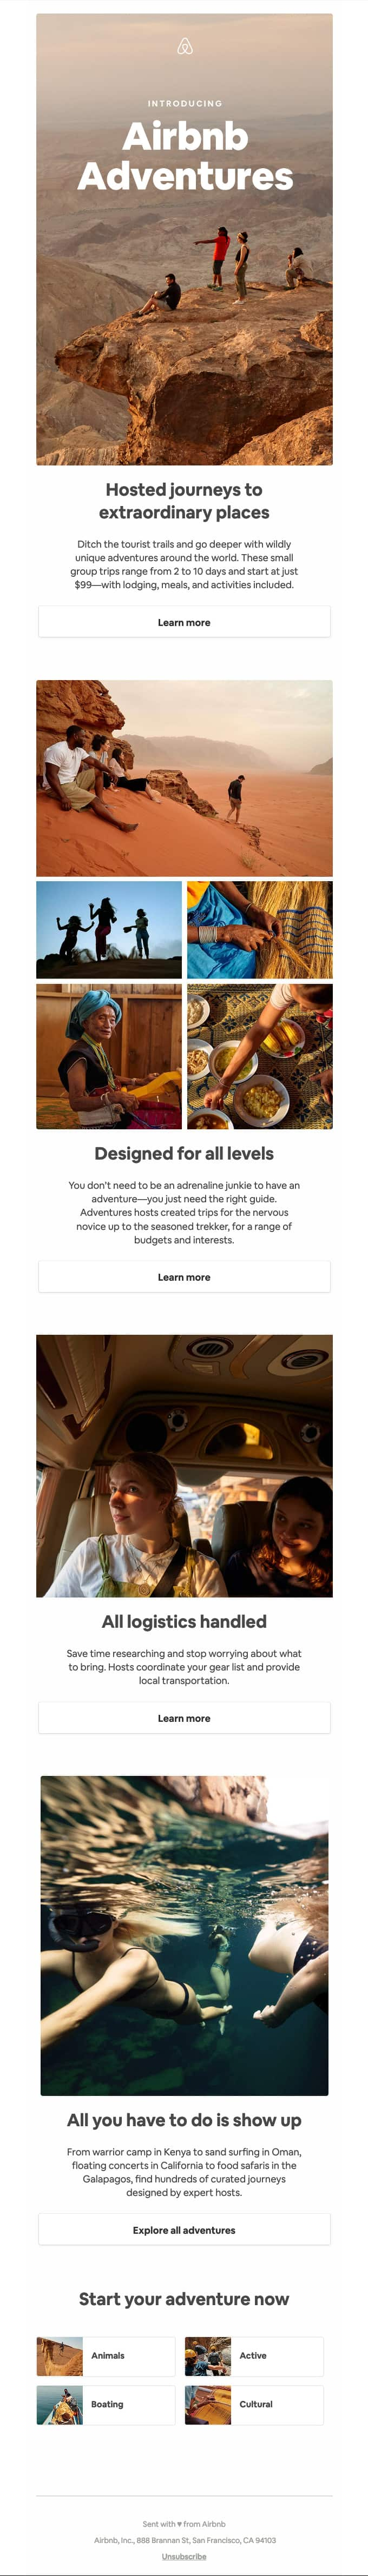 Airbnb adventures product launch email example photography layout